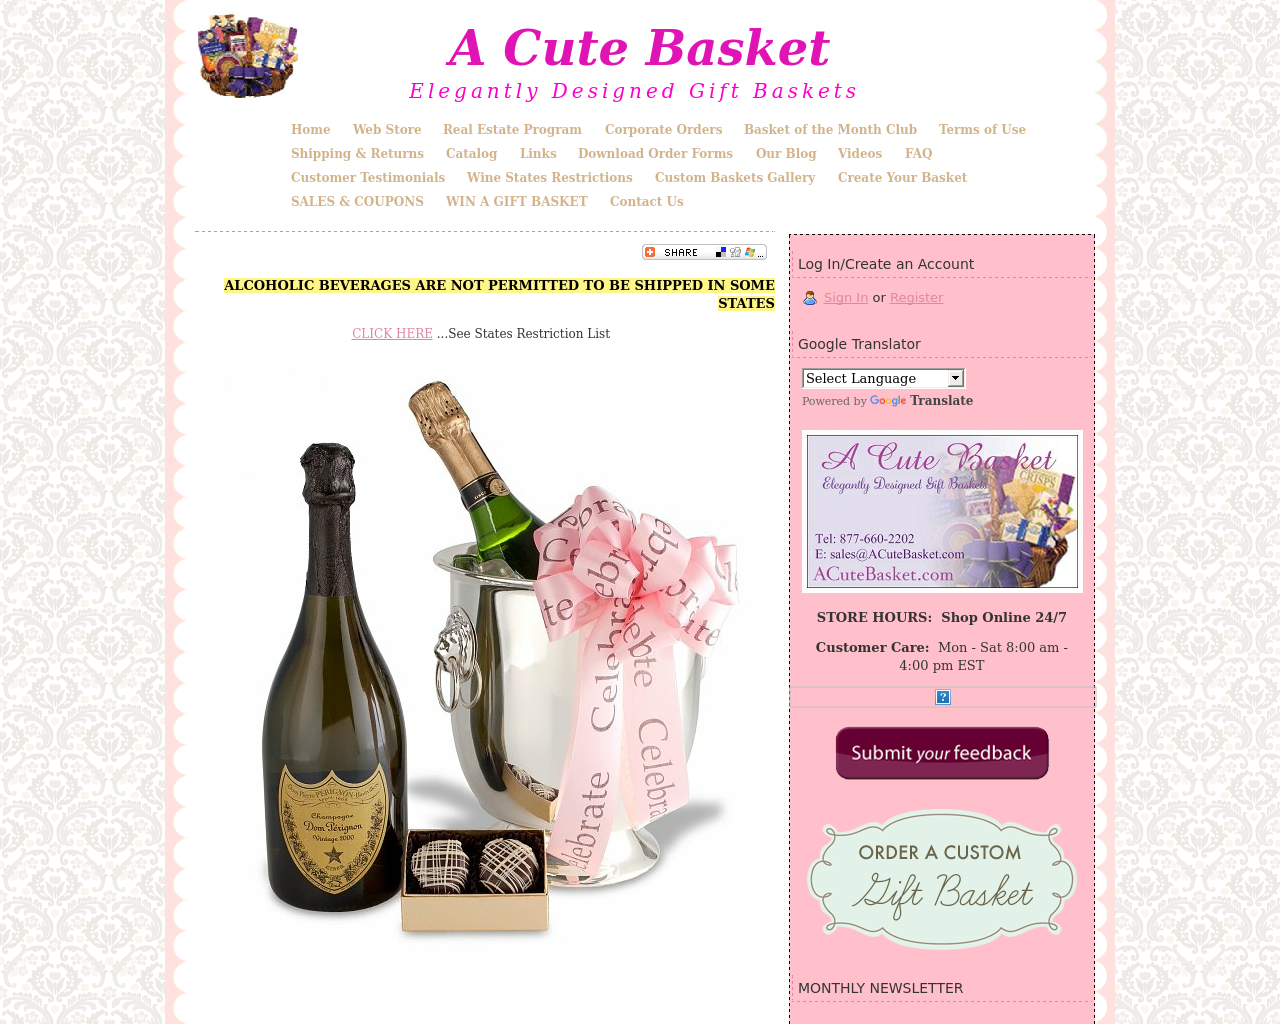 A-Cute-Basket-Advertising-Reviews-Pricing